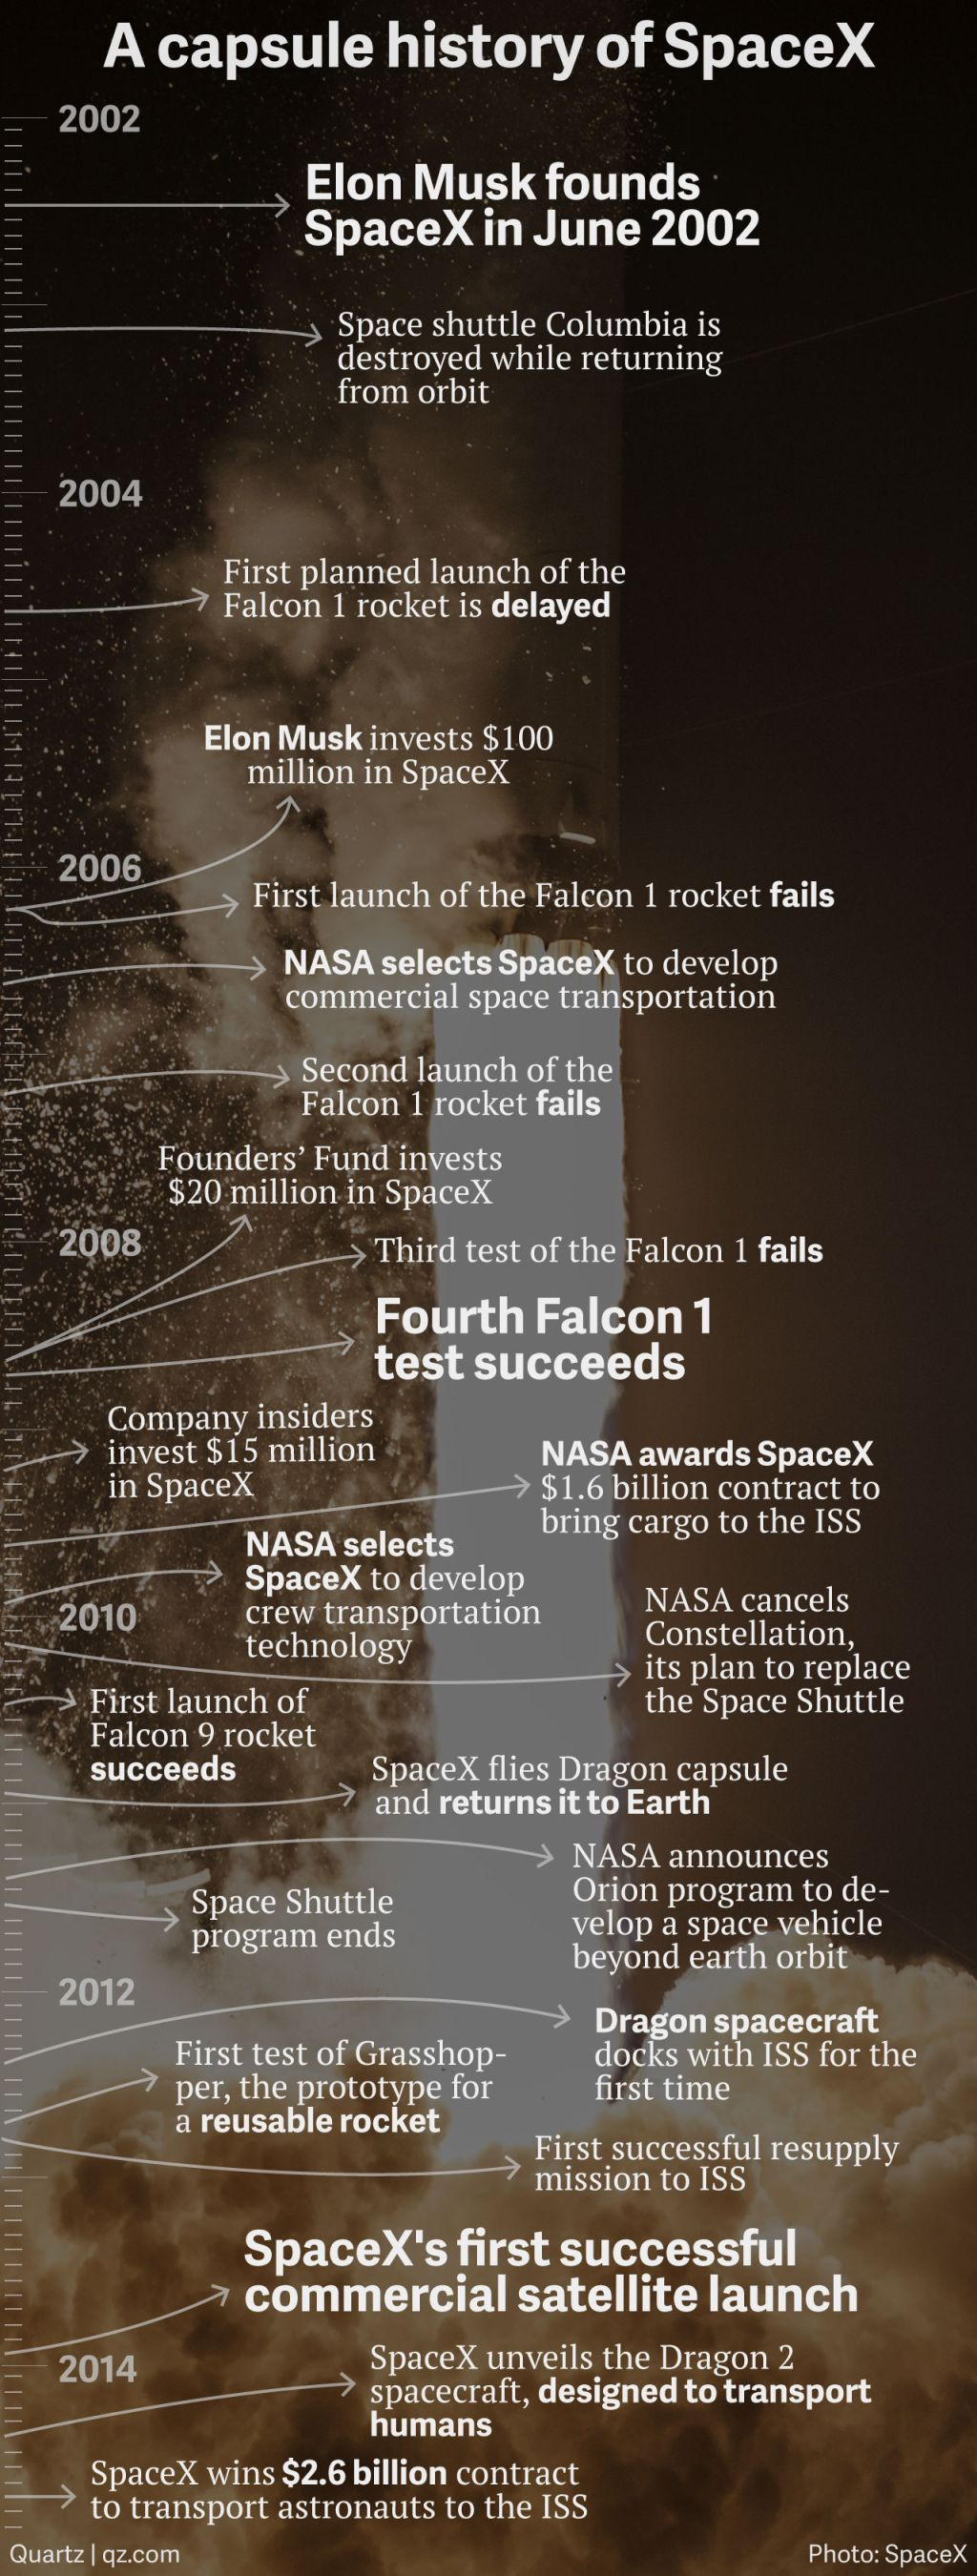 A capsule history of SpaceX